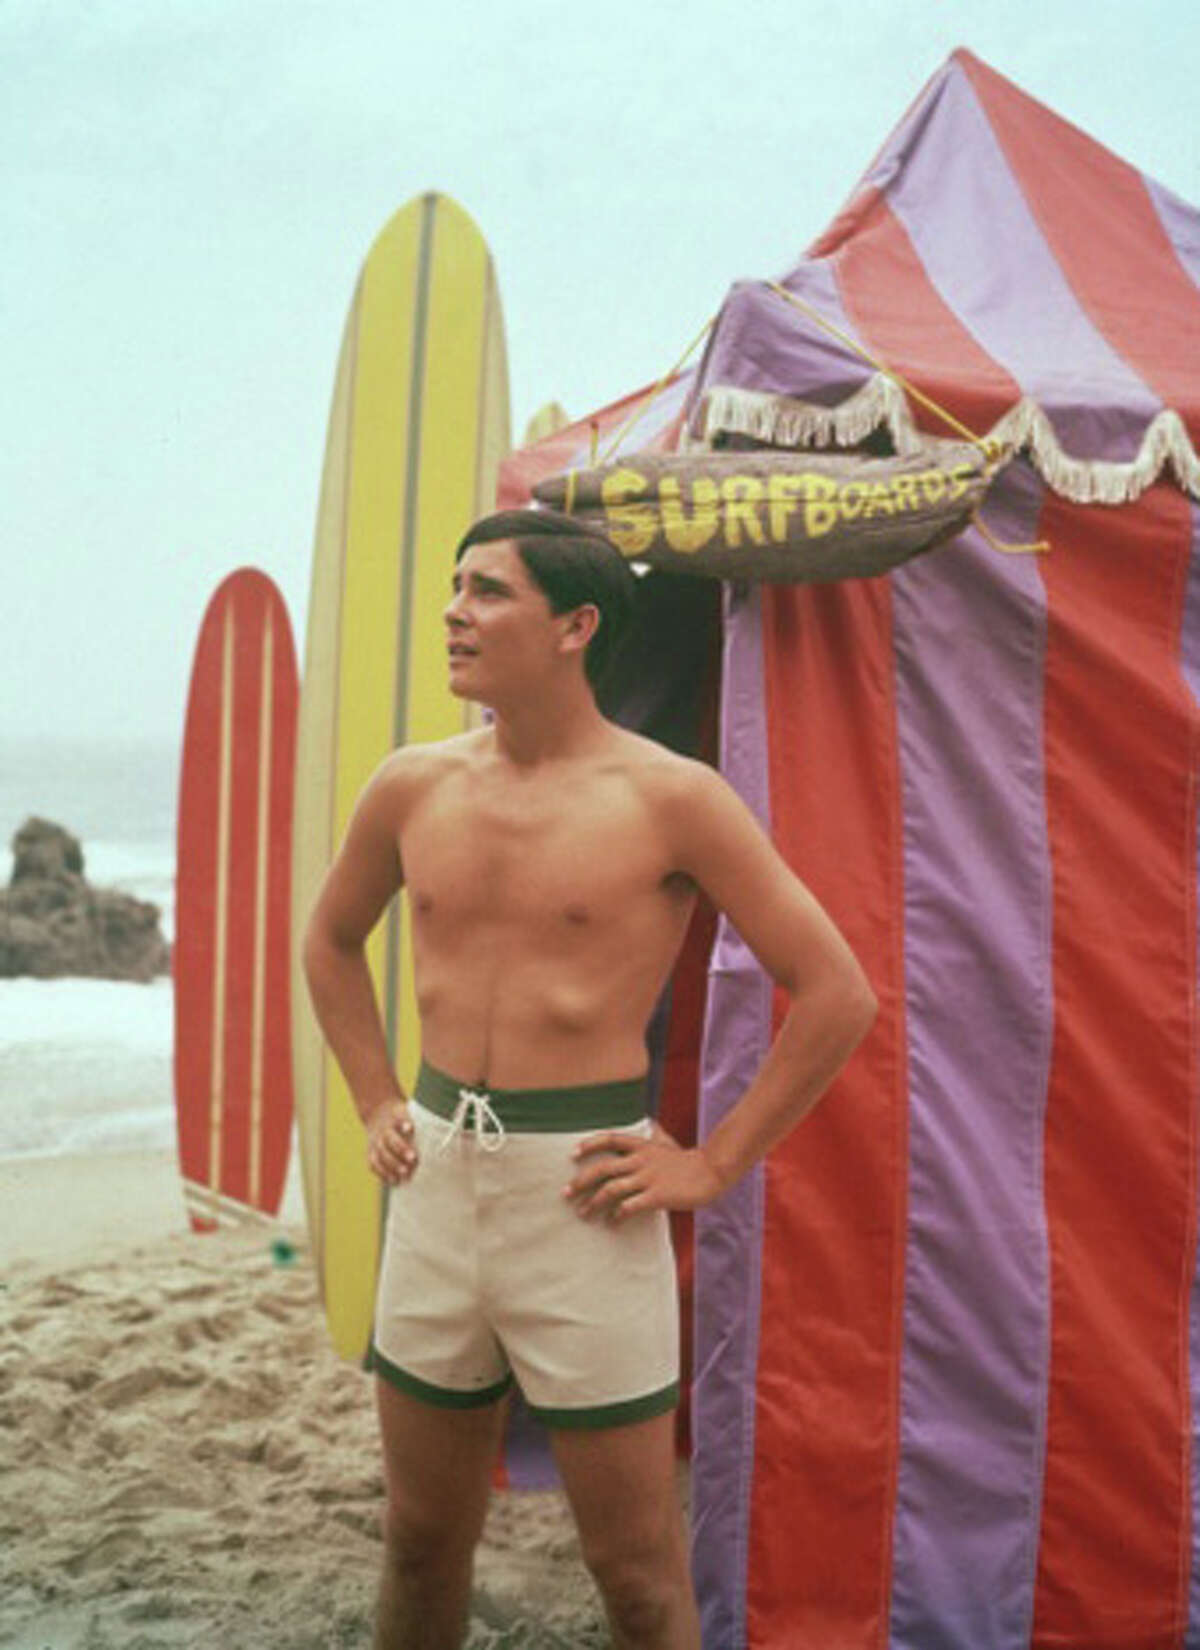 Surfing was all the rage with the Beach Boys at the top of the charts.